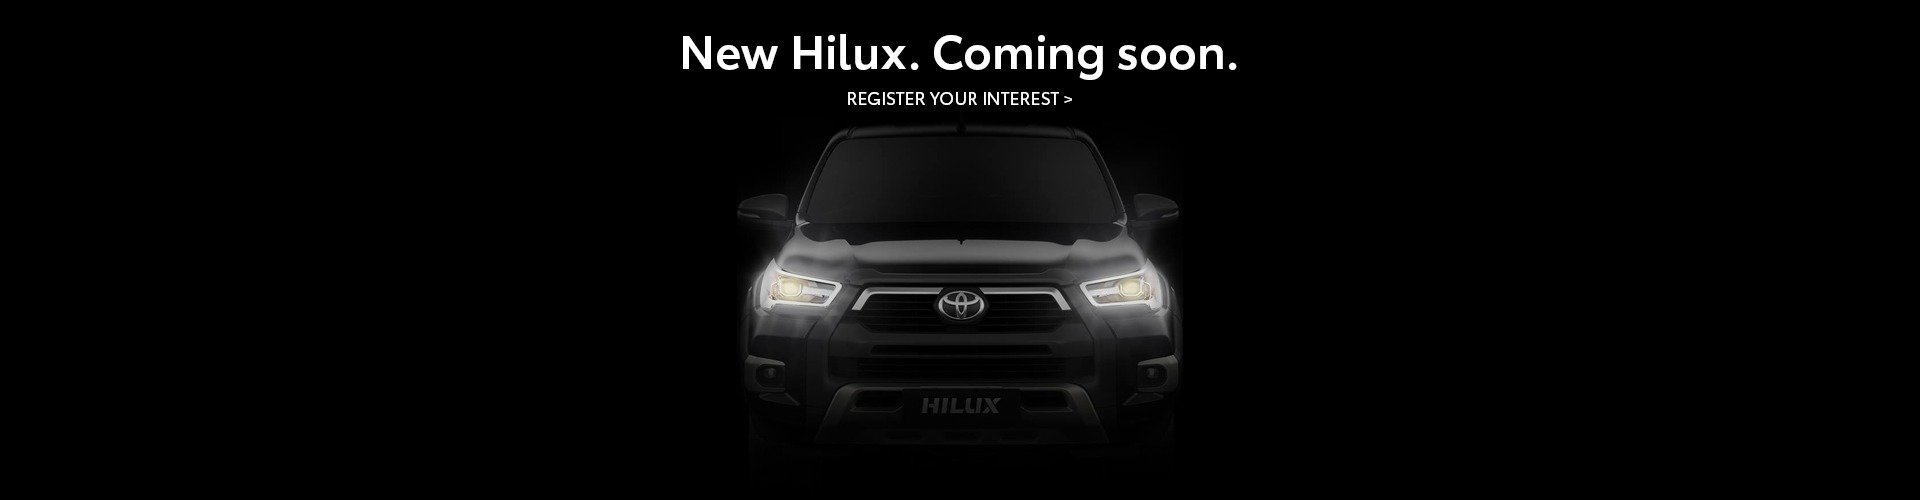 All-New HiLux